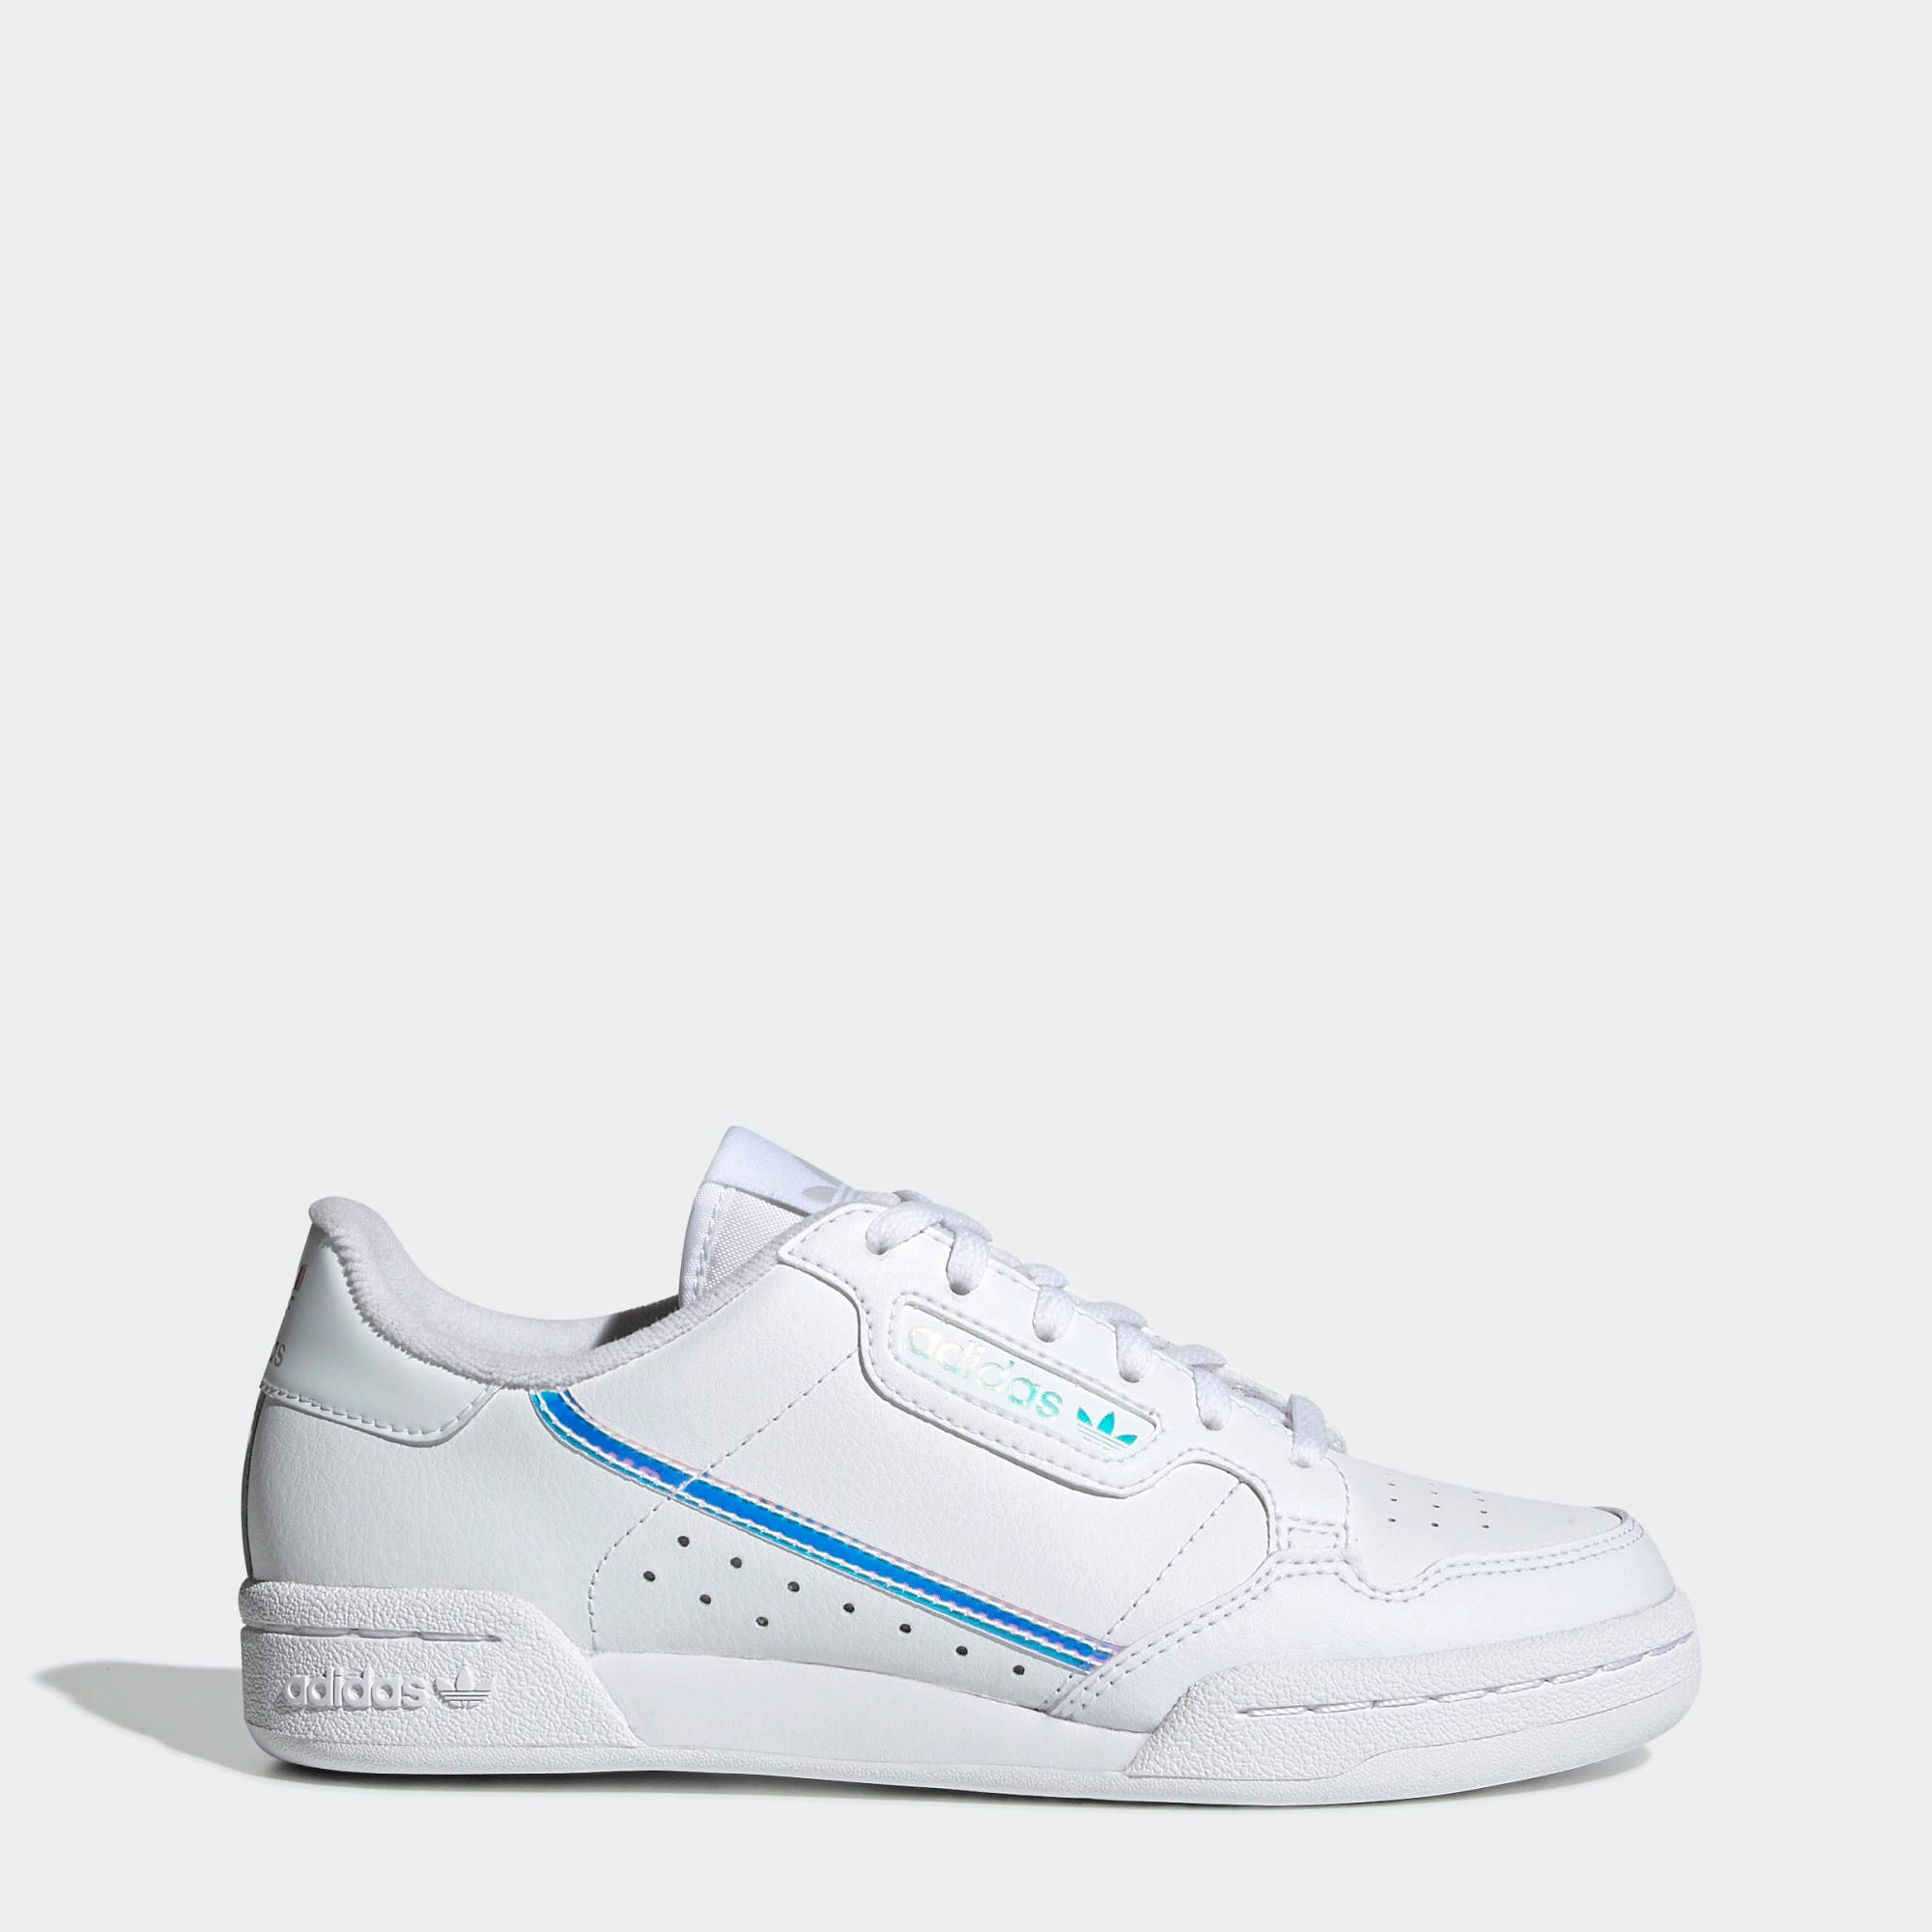 adidas Continental 80 Shoes White Iridescent | Chicago City ...